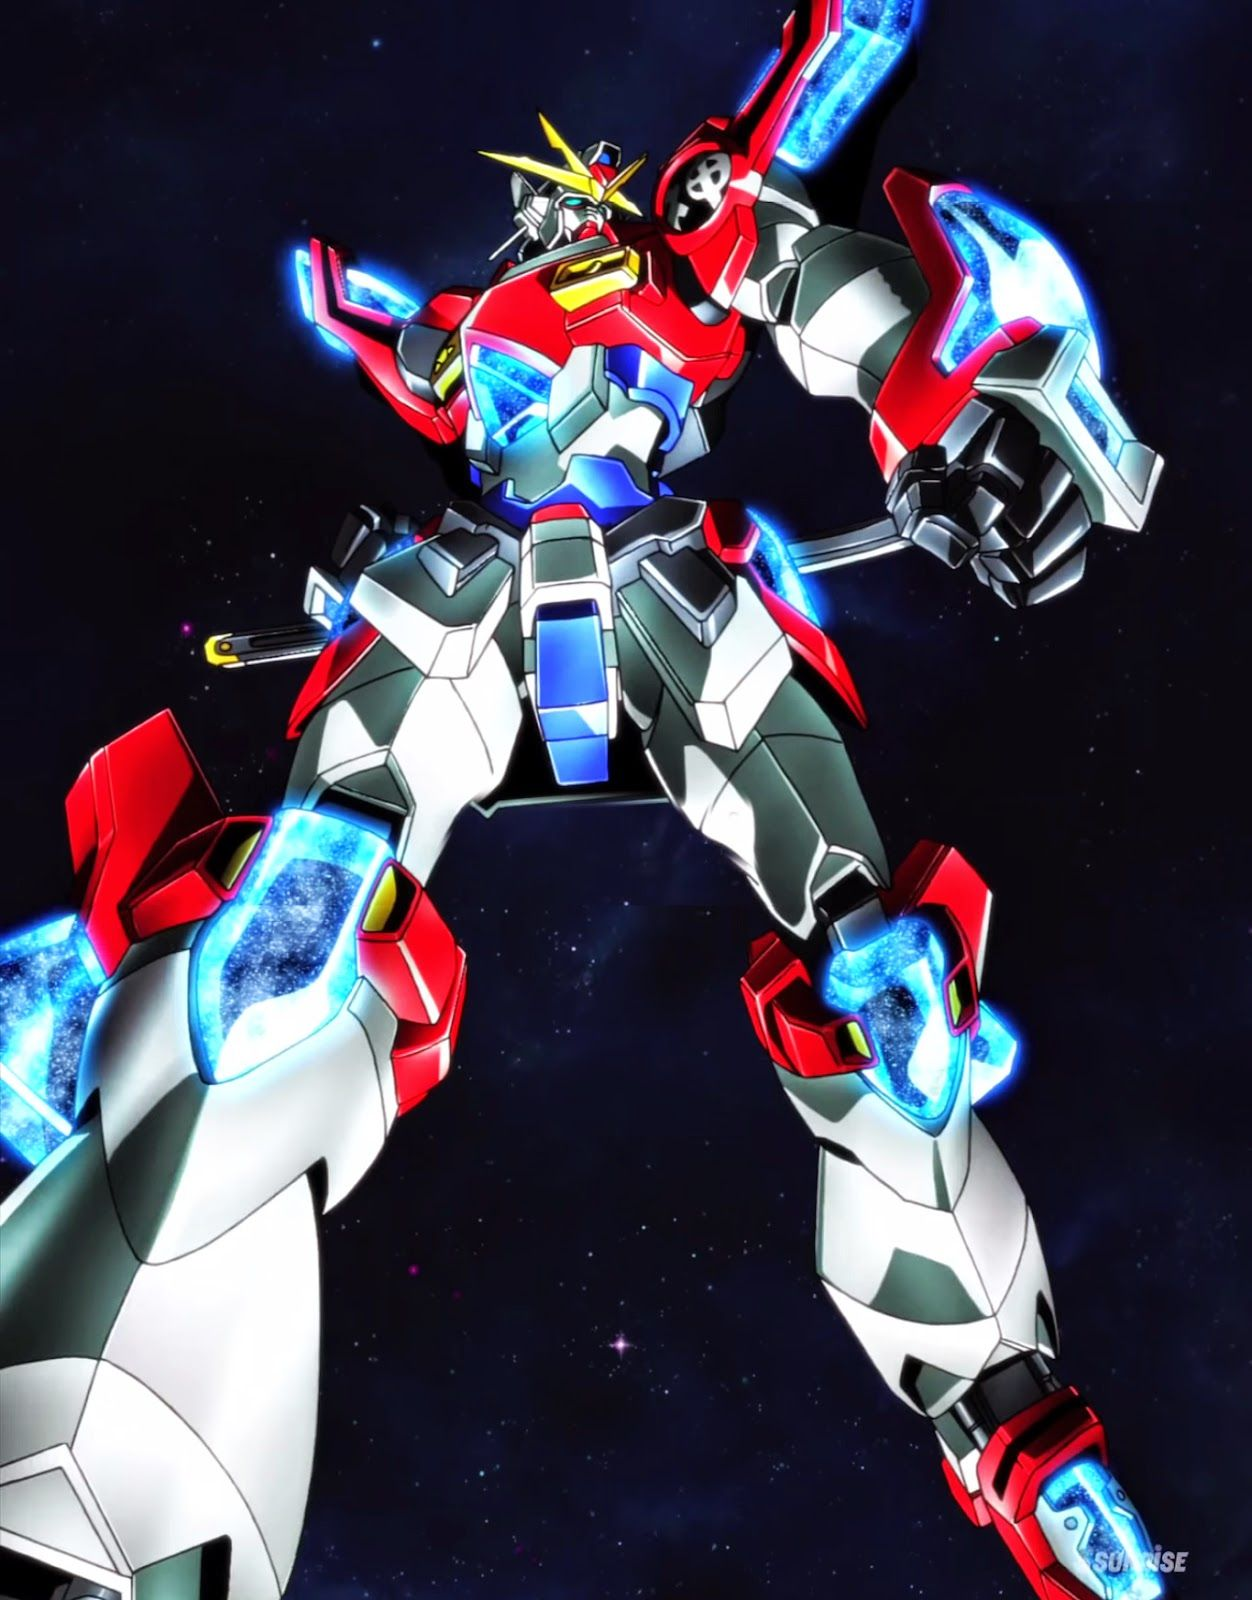 Gundam Build Fighters Try Panorama Vertical Wallpaper Images